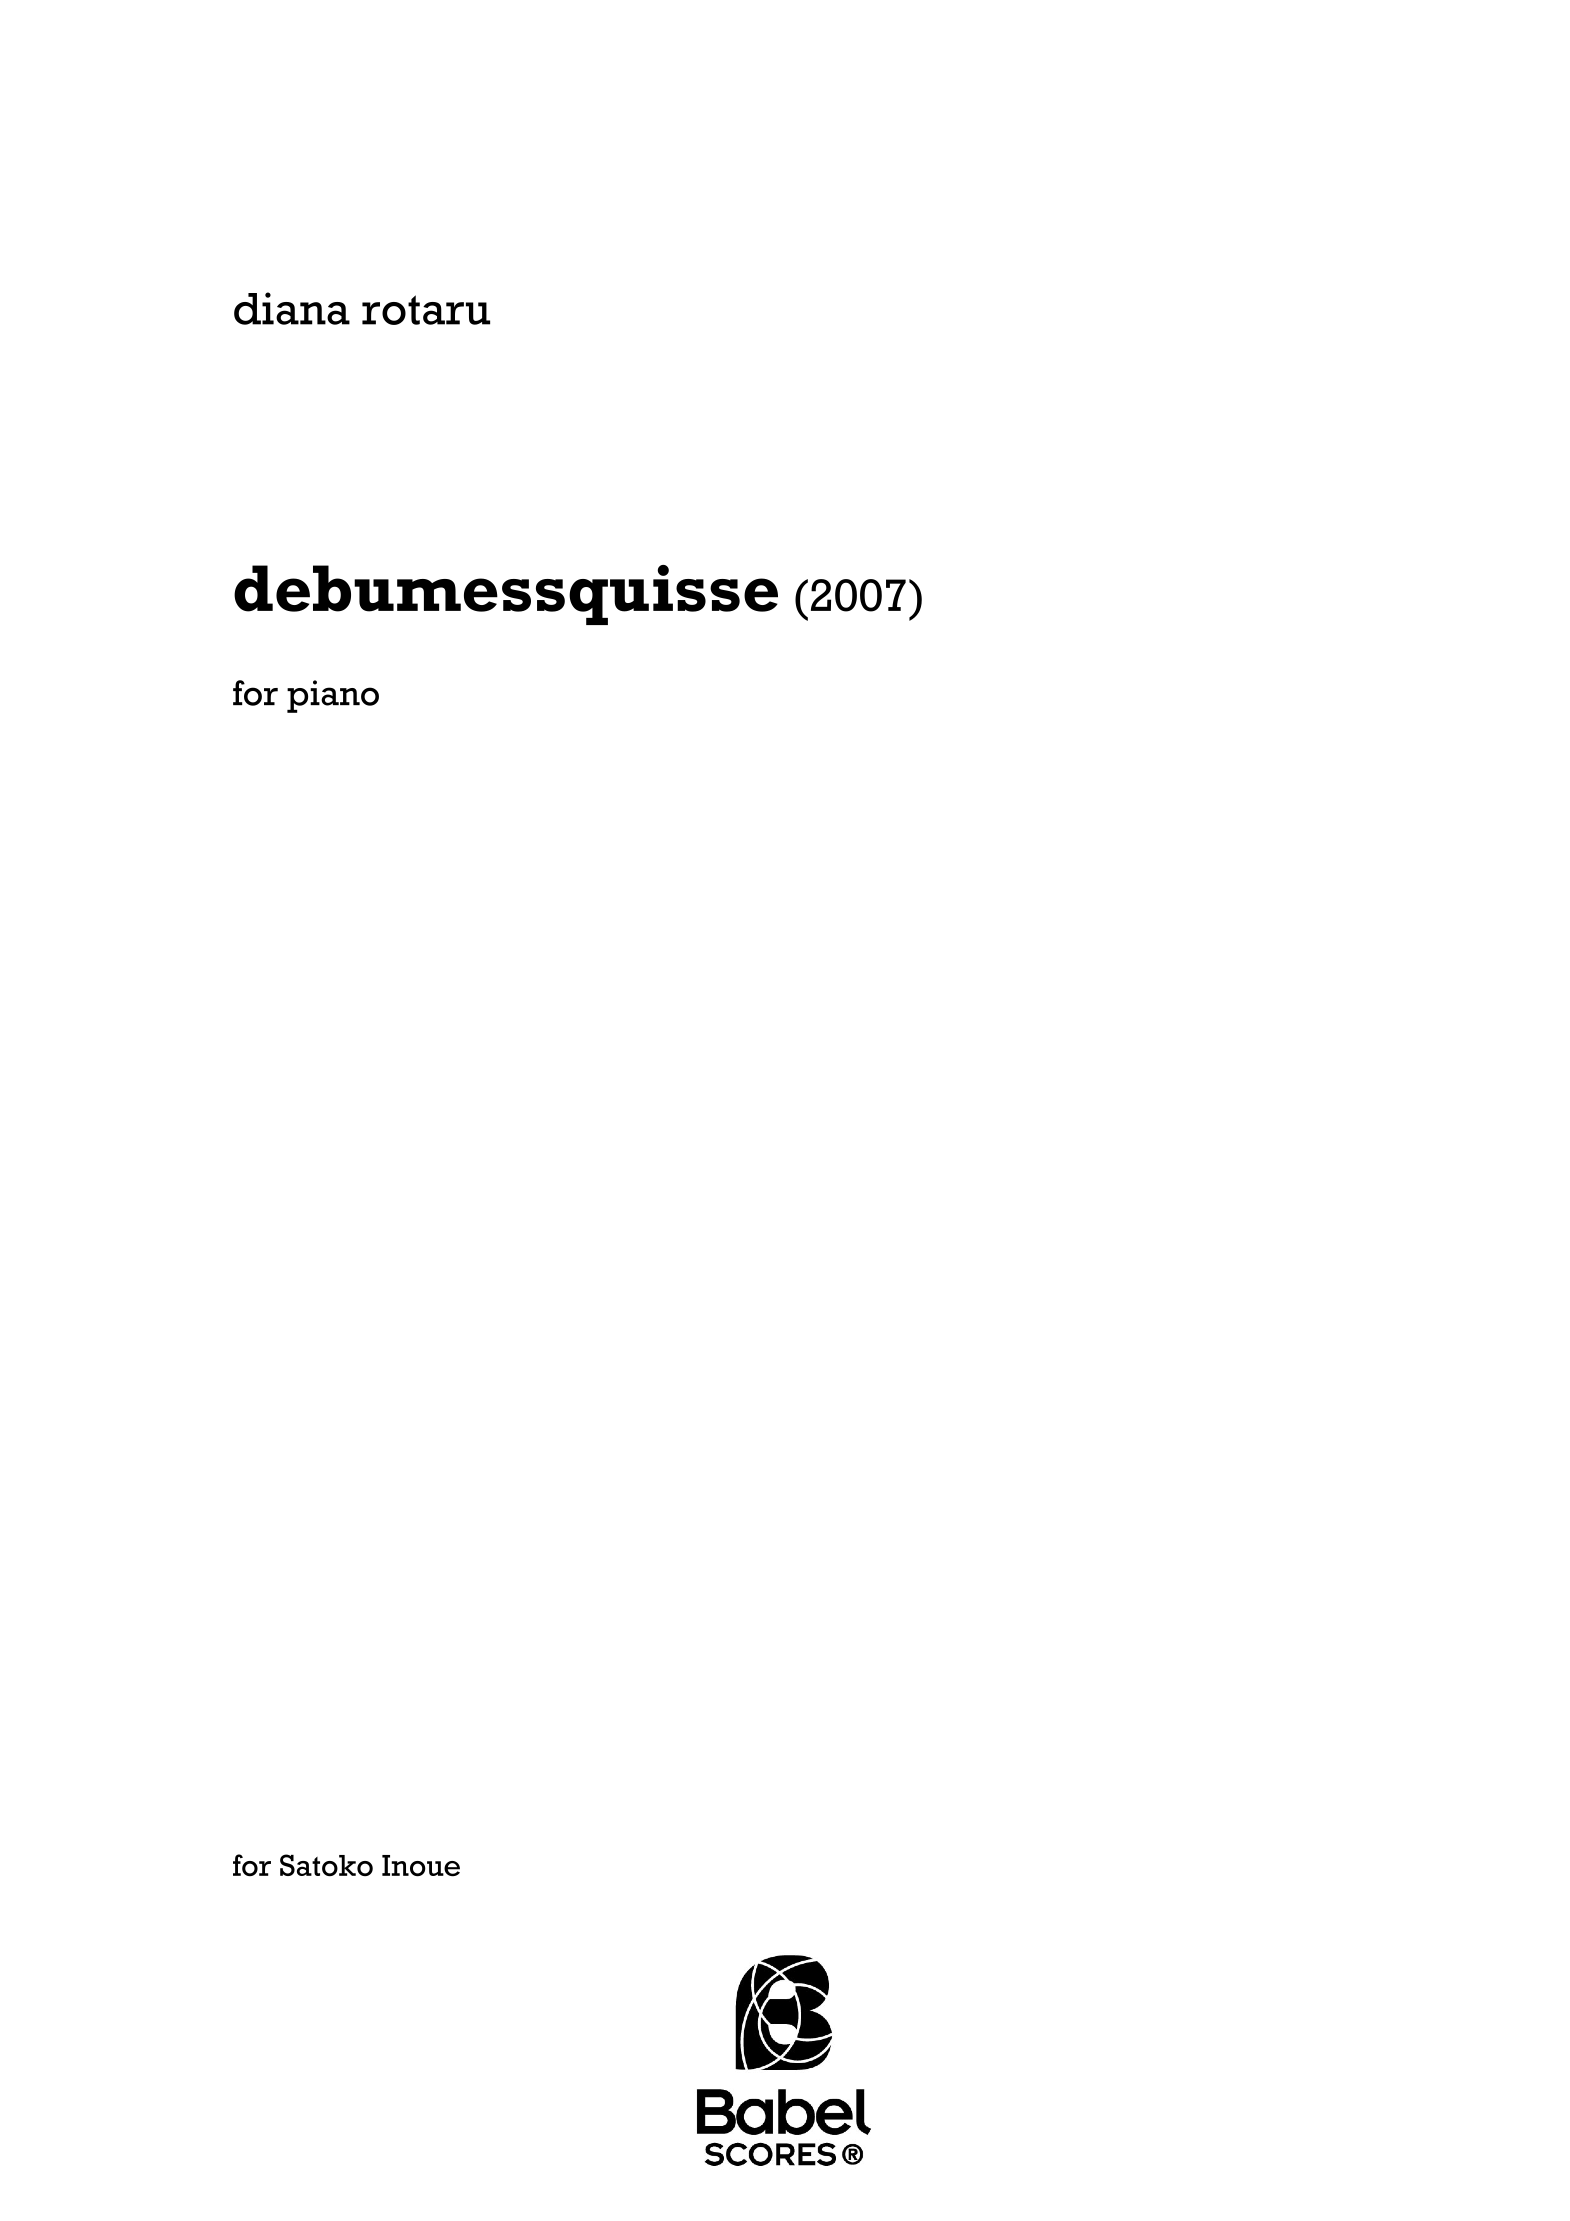 Debumessquisse A4 z